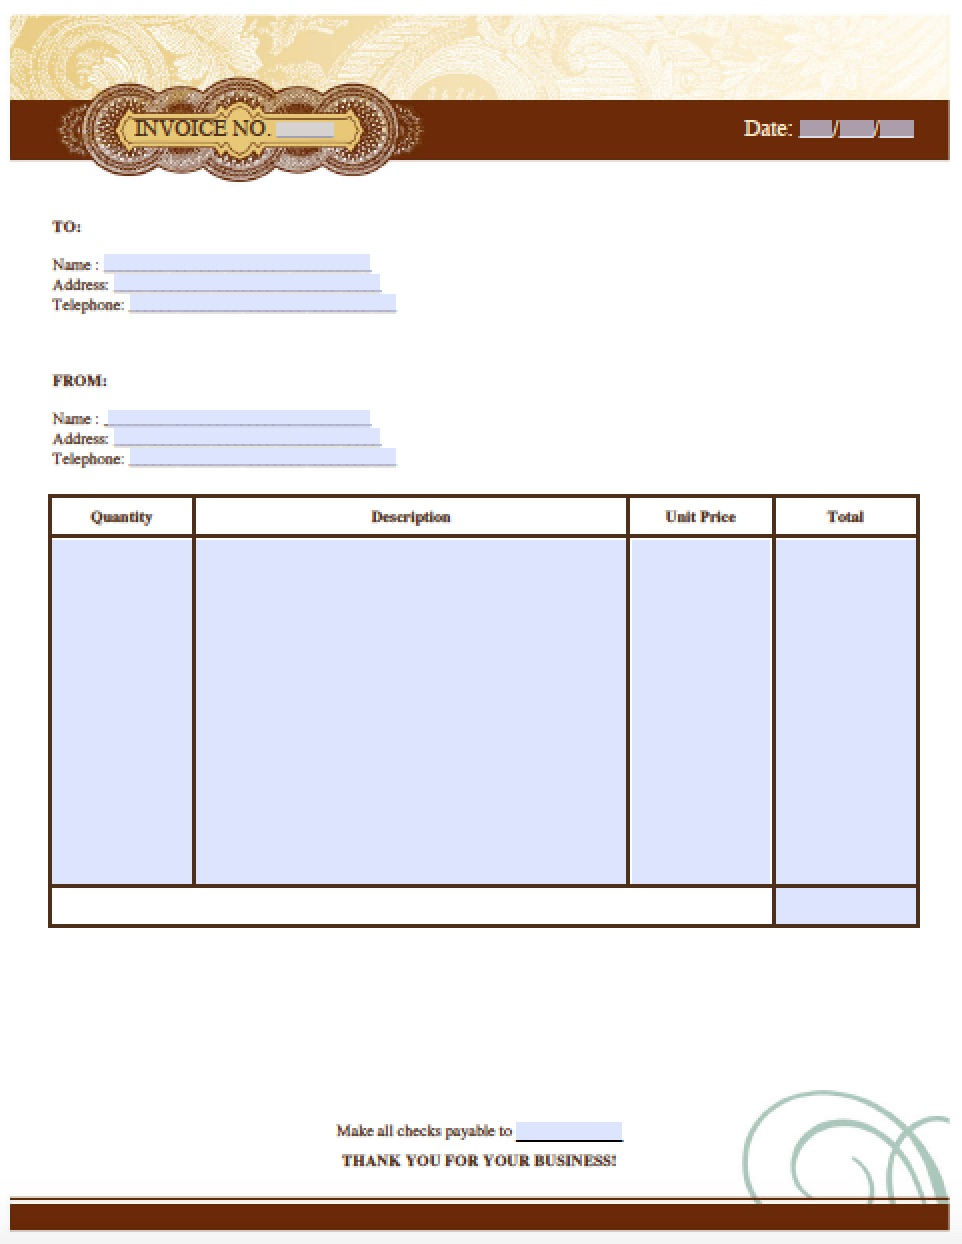 free carpet cleaning service invoice template | excel | pdf | word, Invoice templates